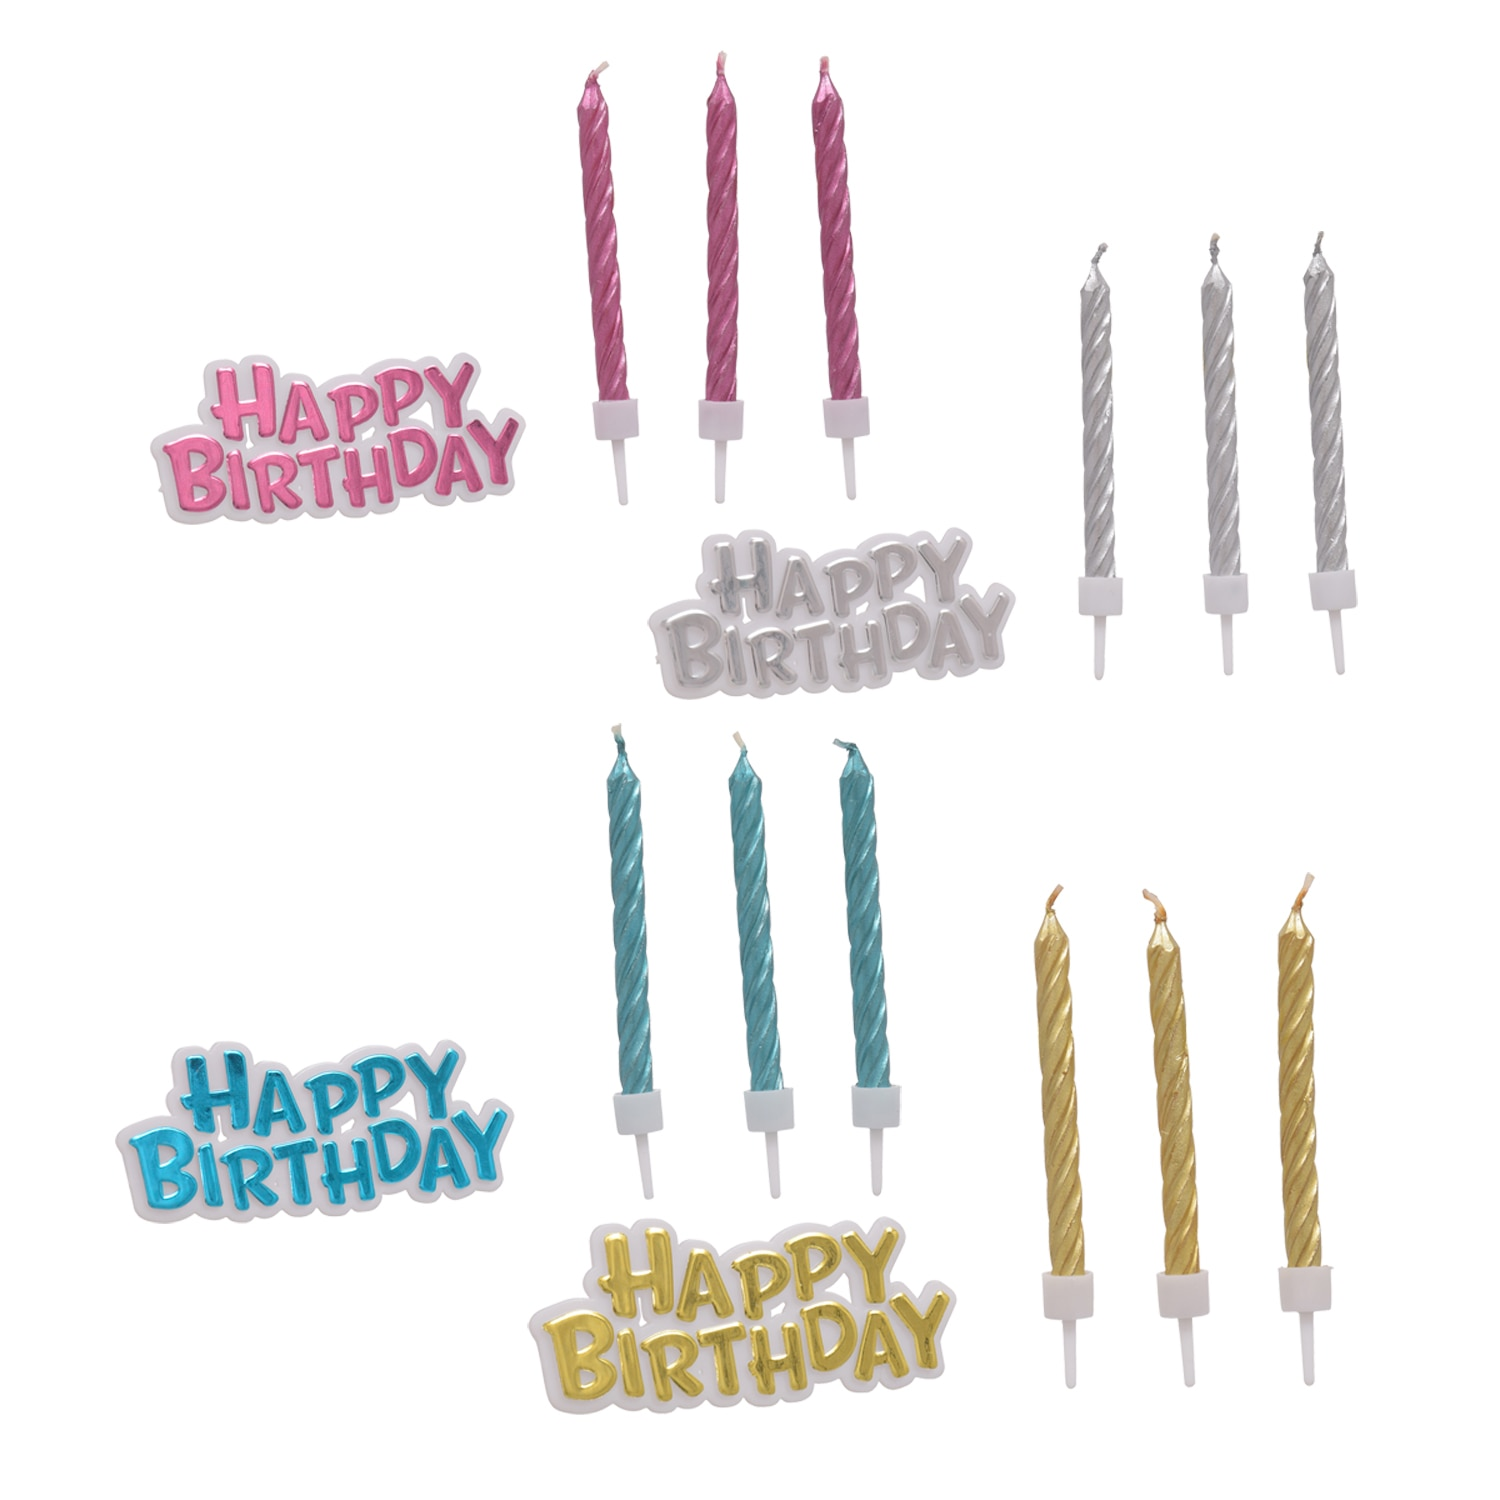 Colorful Metallic Birthday Candles With Cake Decor 16 Pc Sets